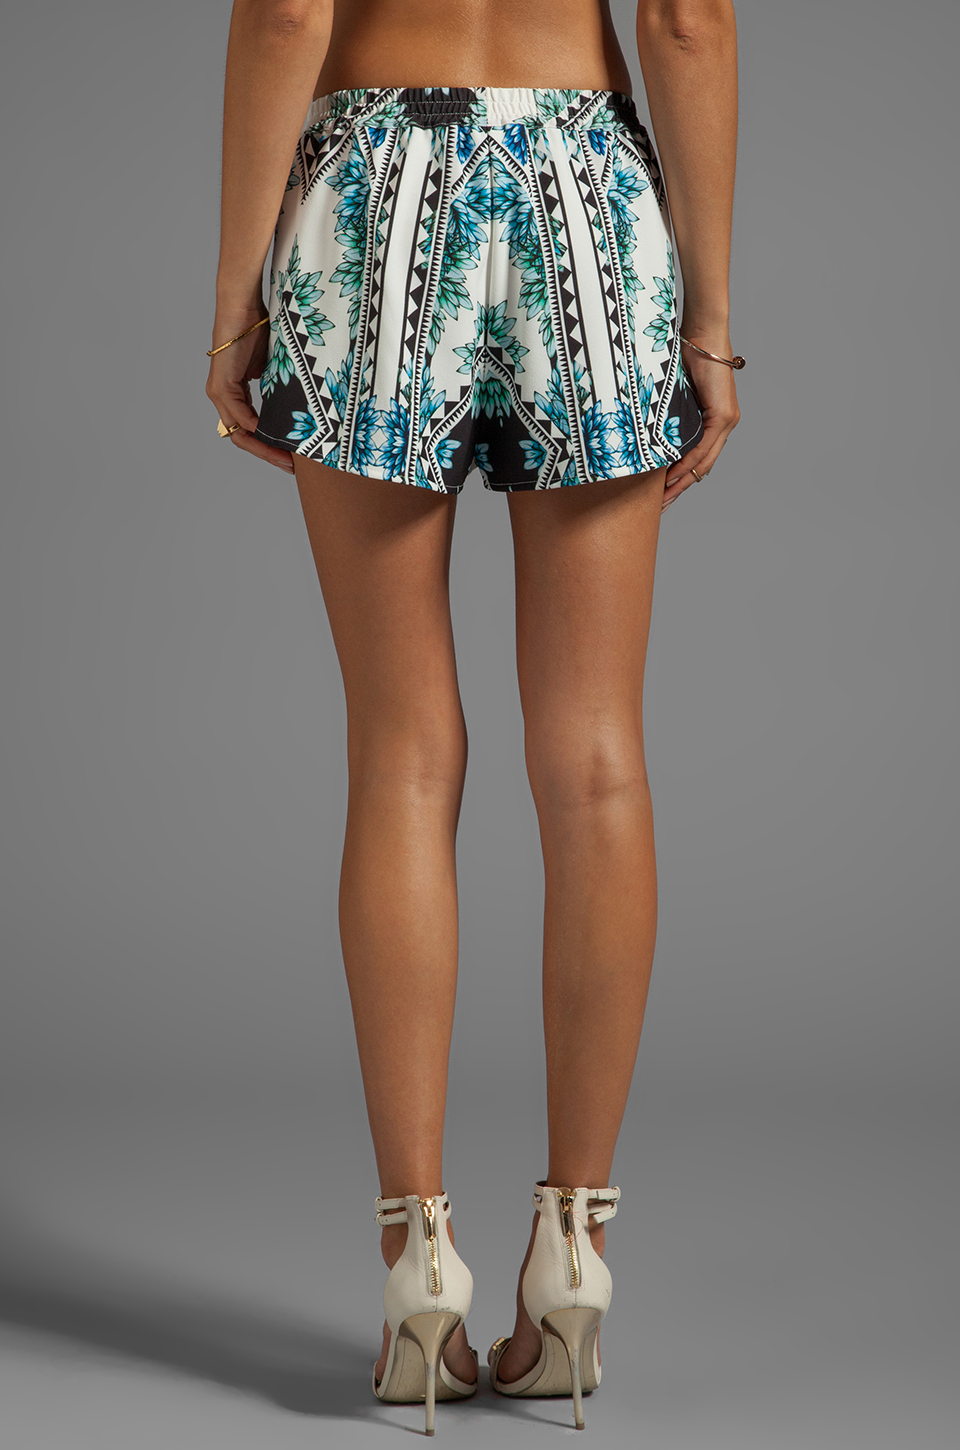 Finders Keepers Wonderful Remark Shorts in Aztec Floral Print Blue & Black | REVOLVE